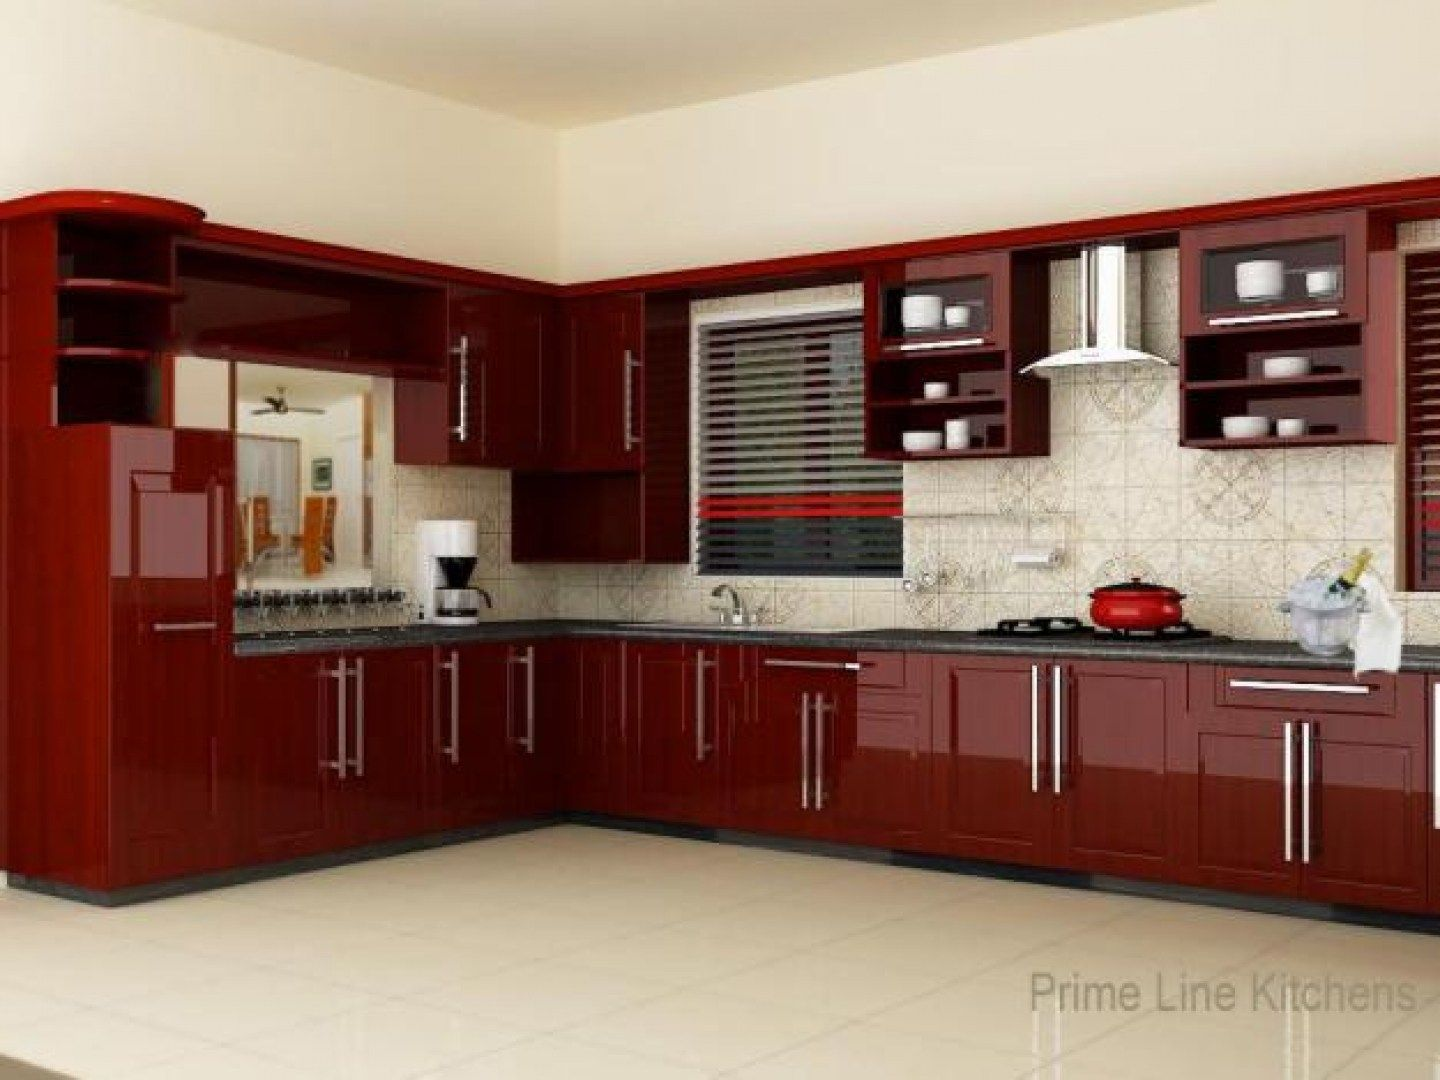 Kitchen Design Cabinet Unique Kitchen Design Ideas Kitchen Woodwork Designs Hyderabad Download Inspiration